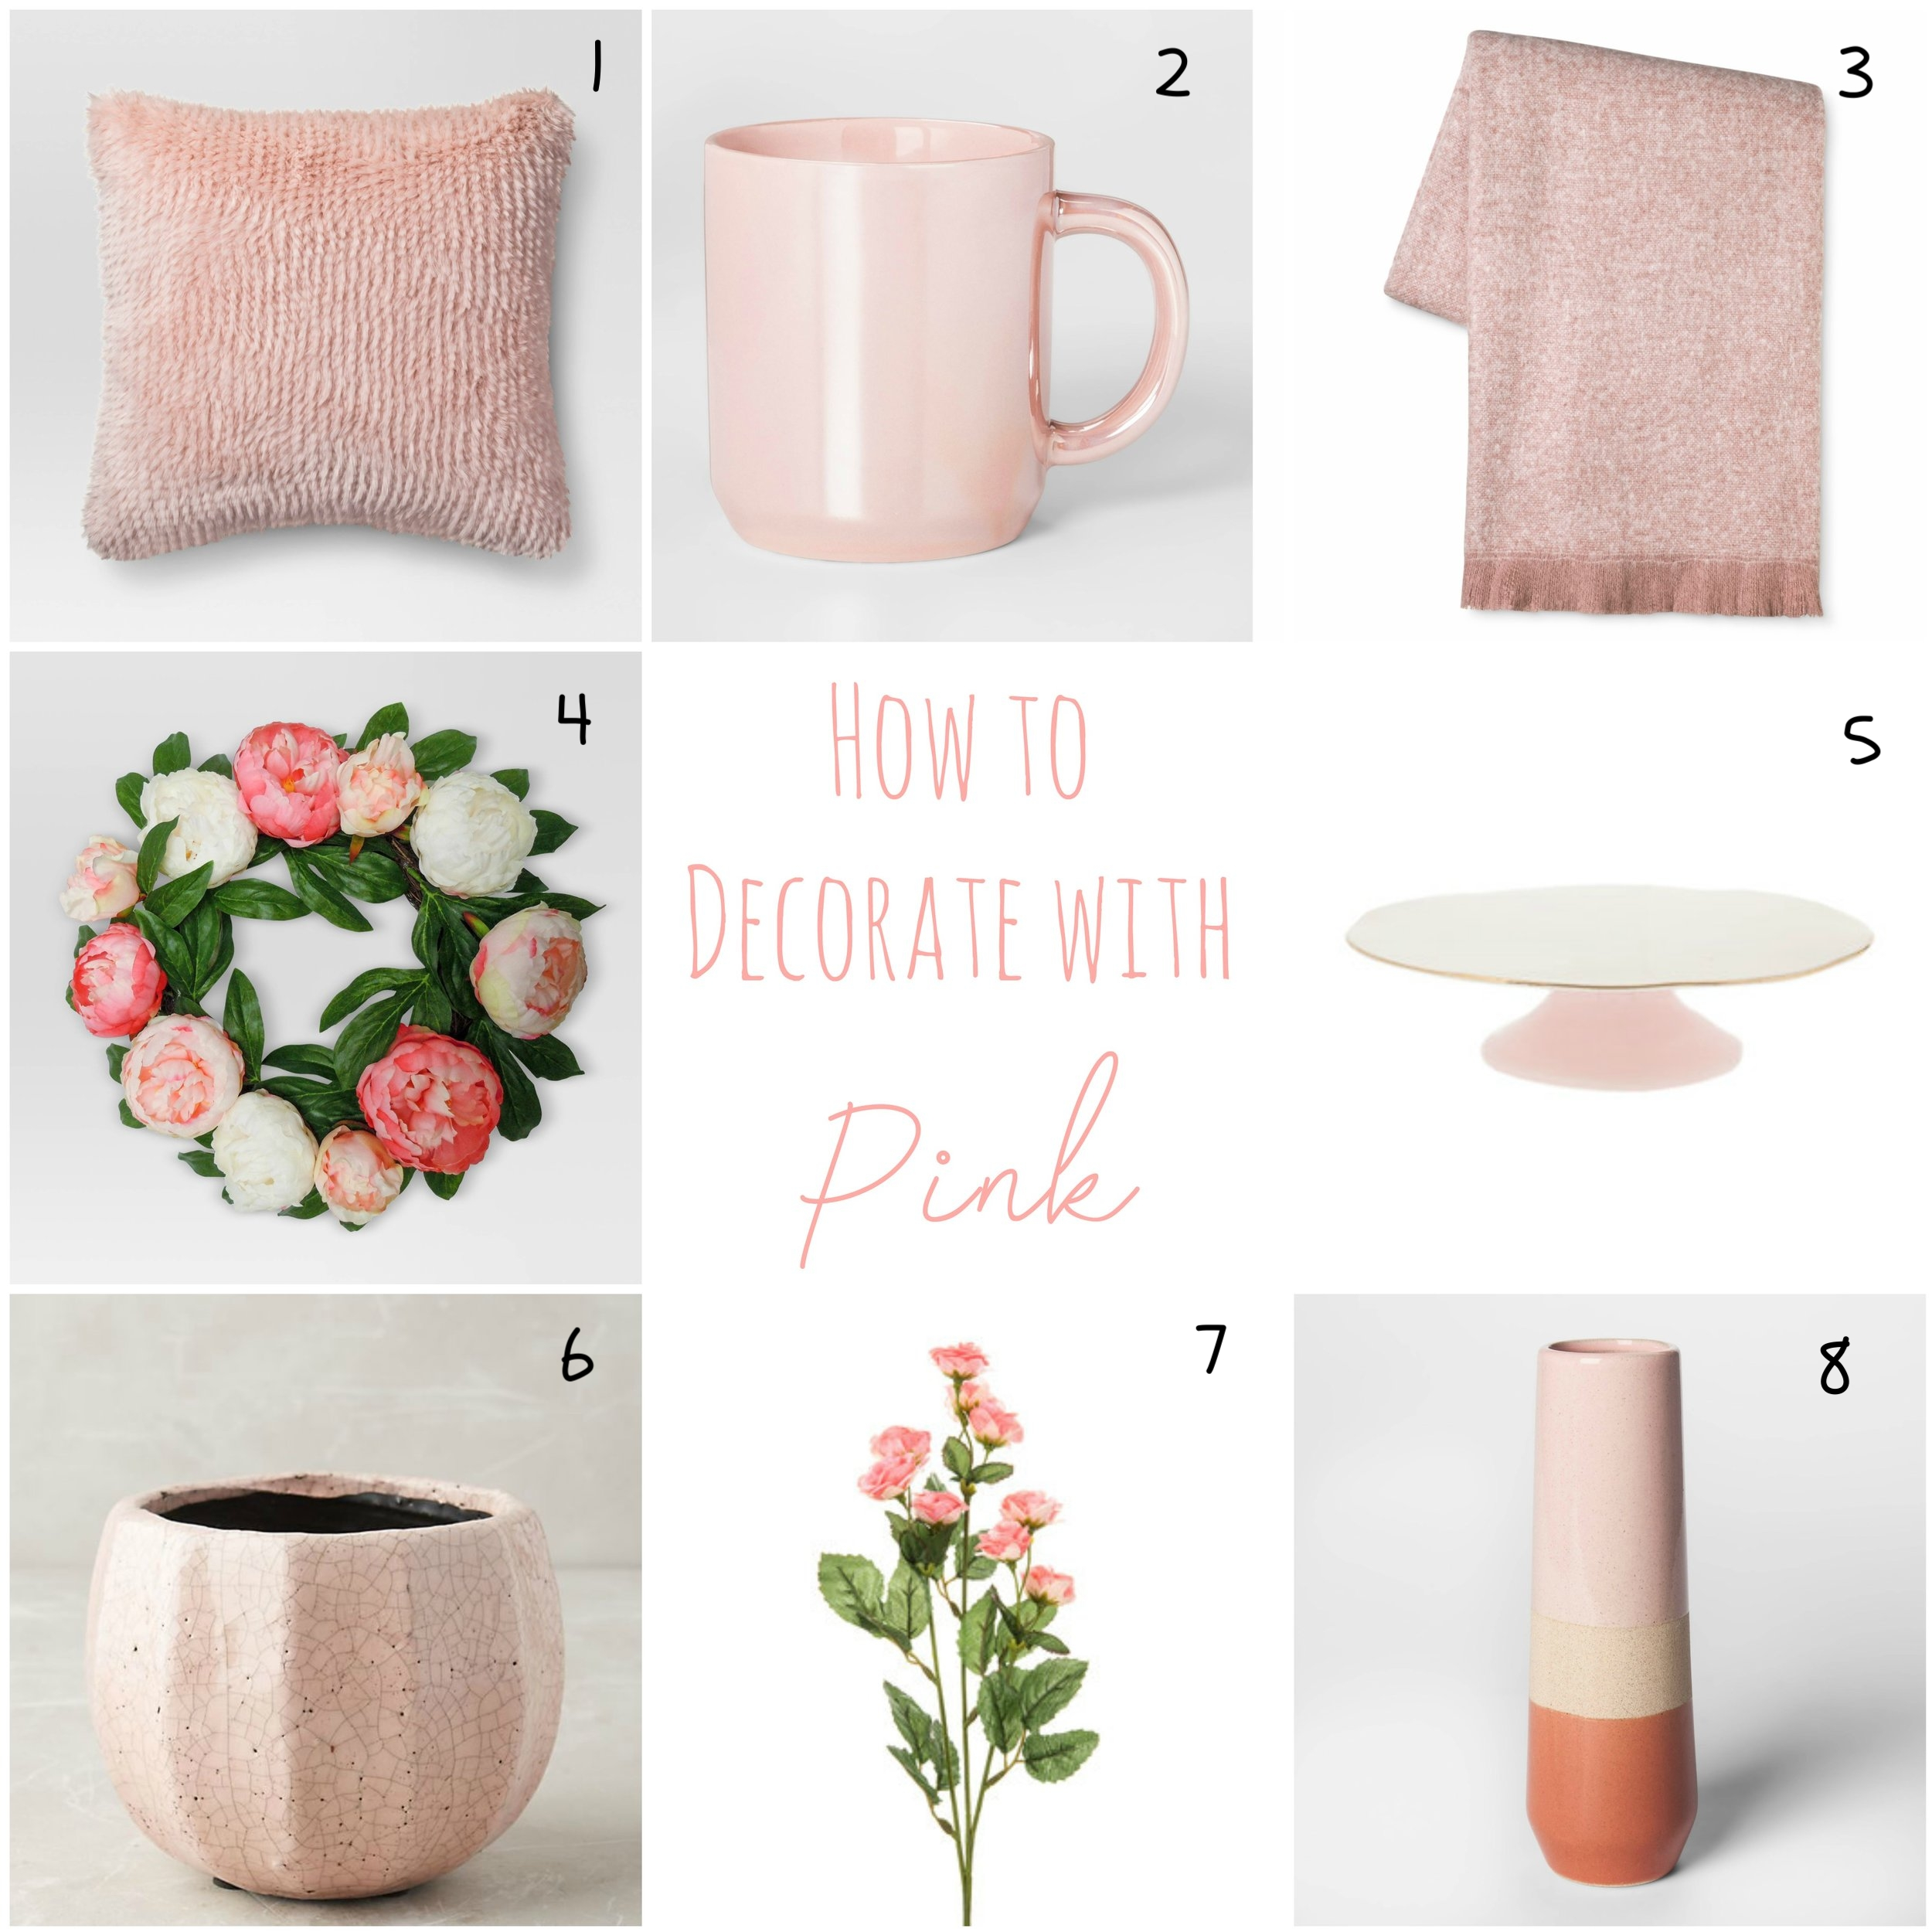 How to Decorate with Pink.jpg